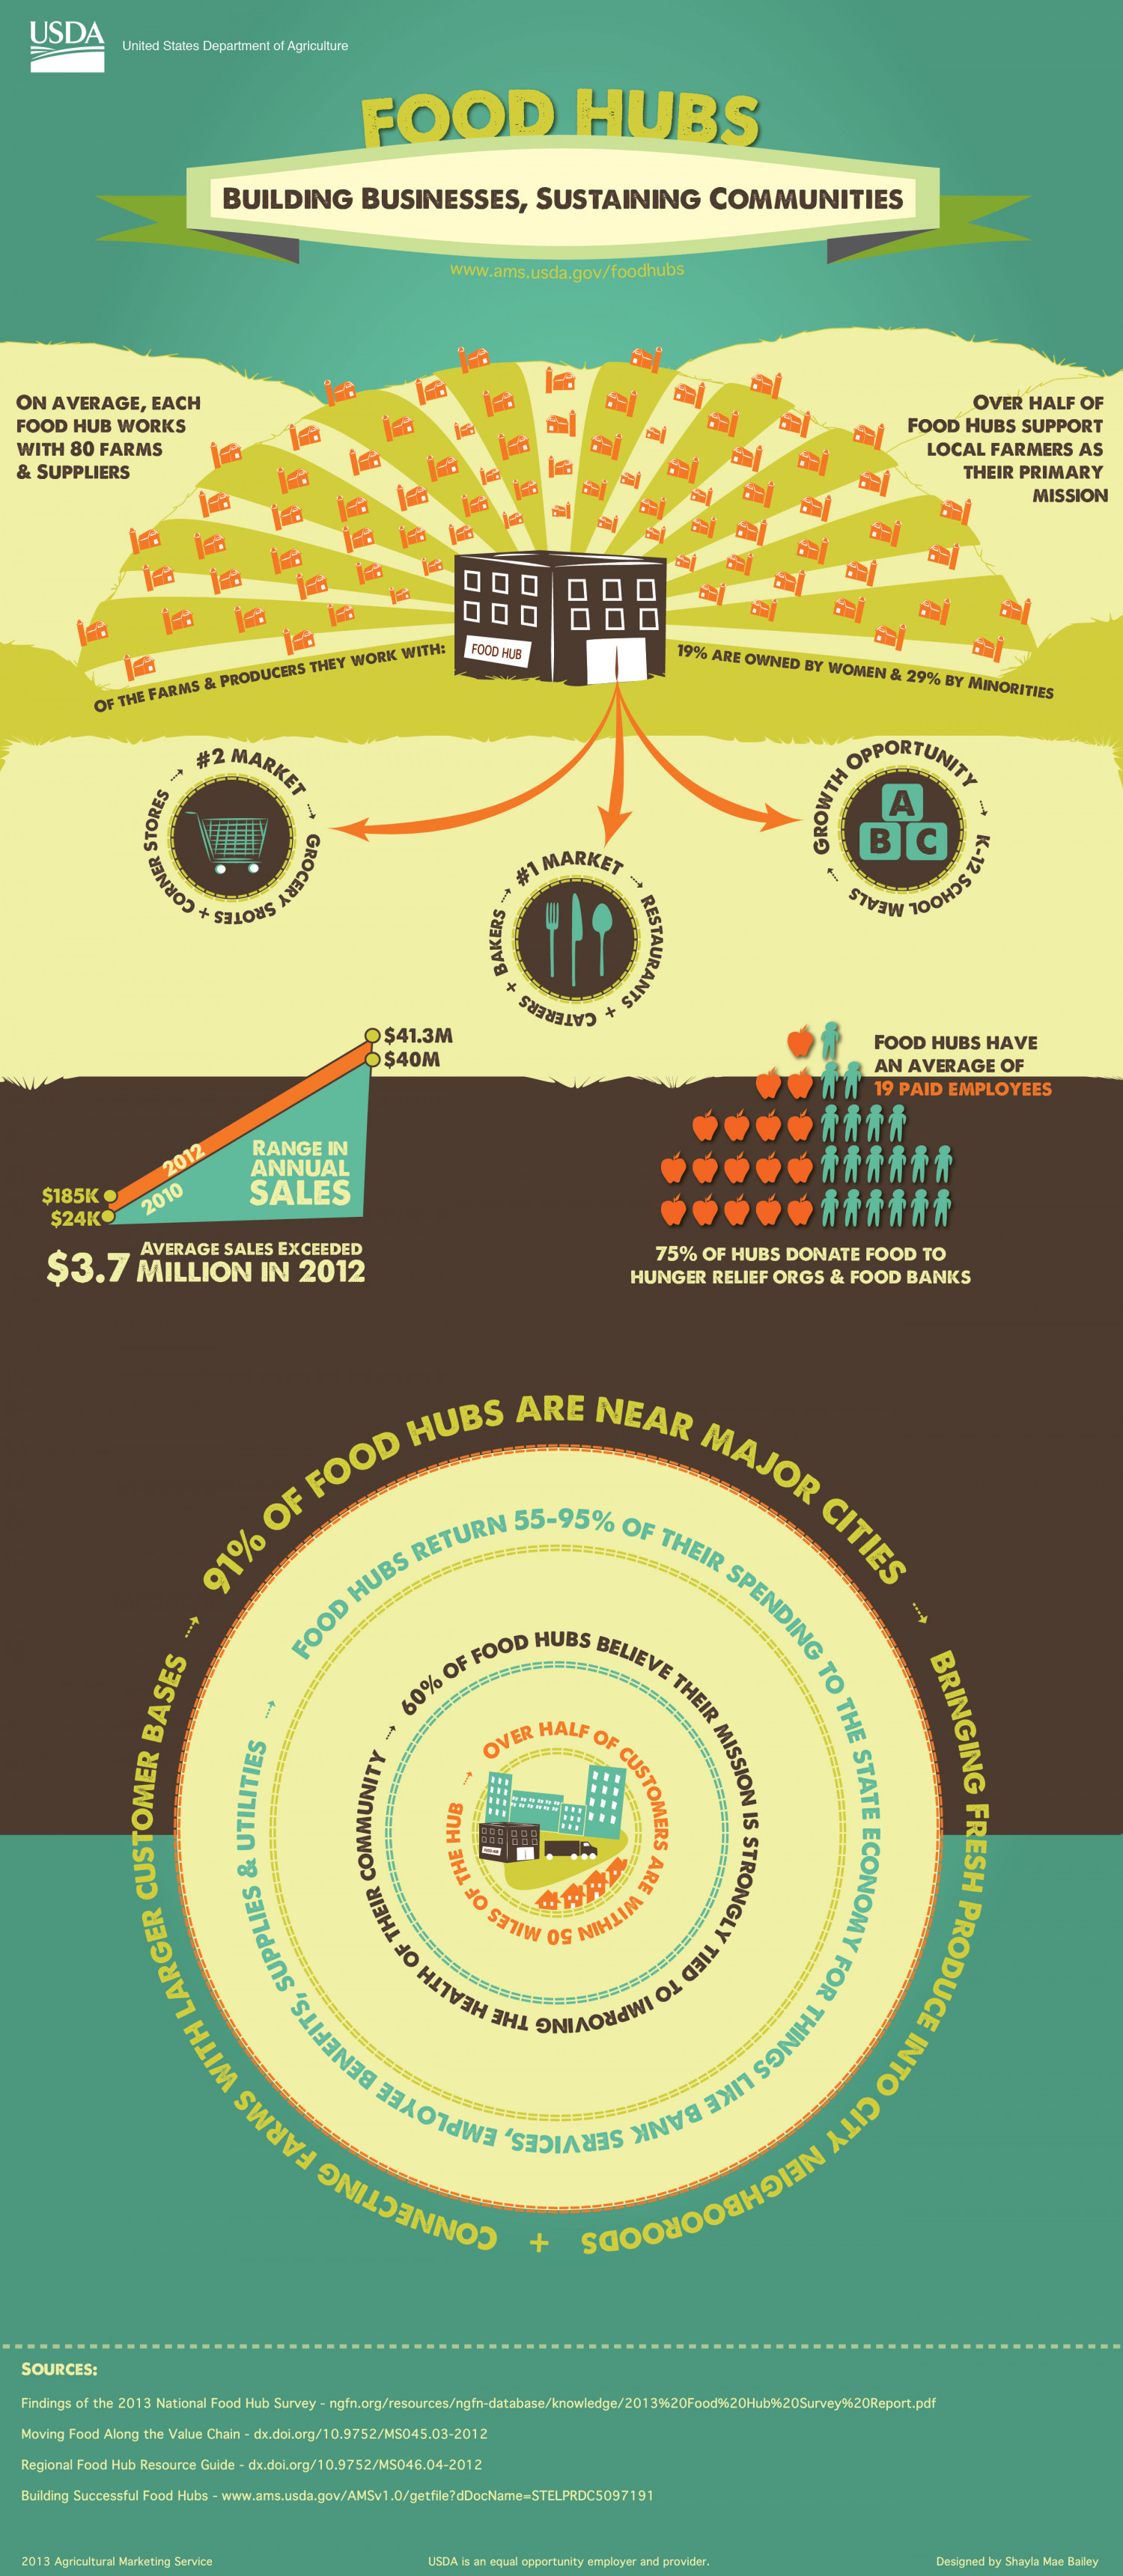 Food Hubs - Building Businesses, Sustaining Communities Infographic